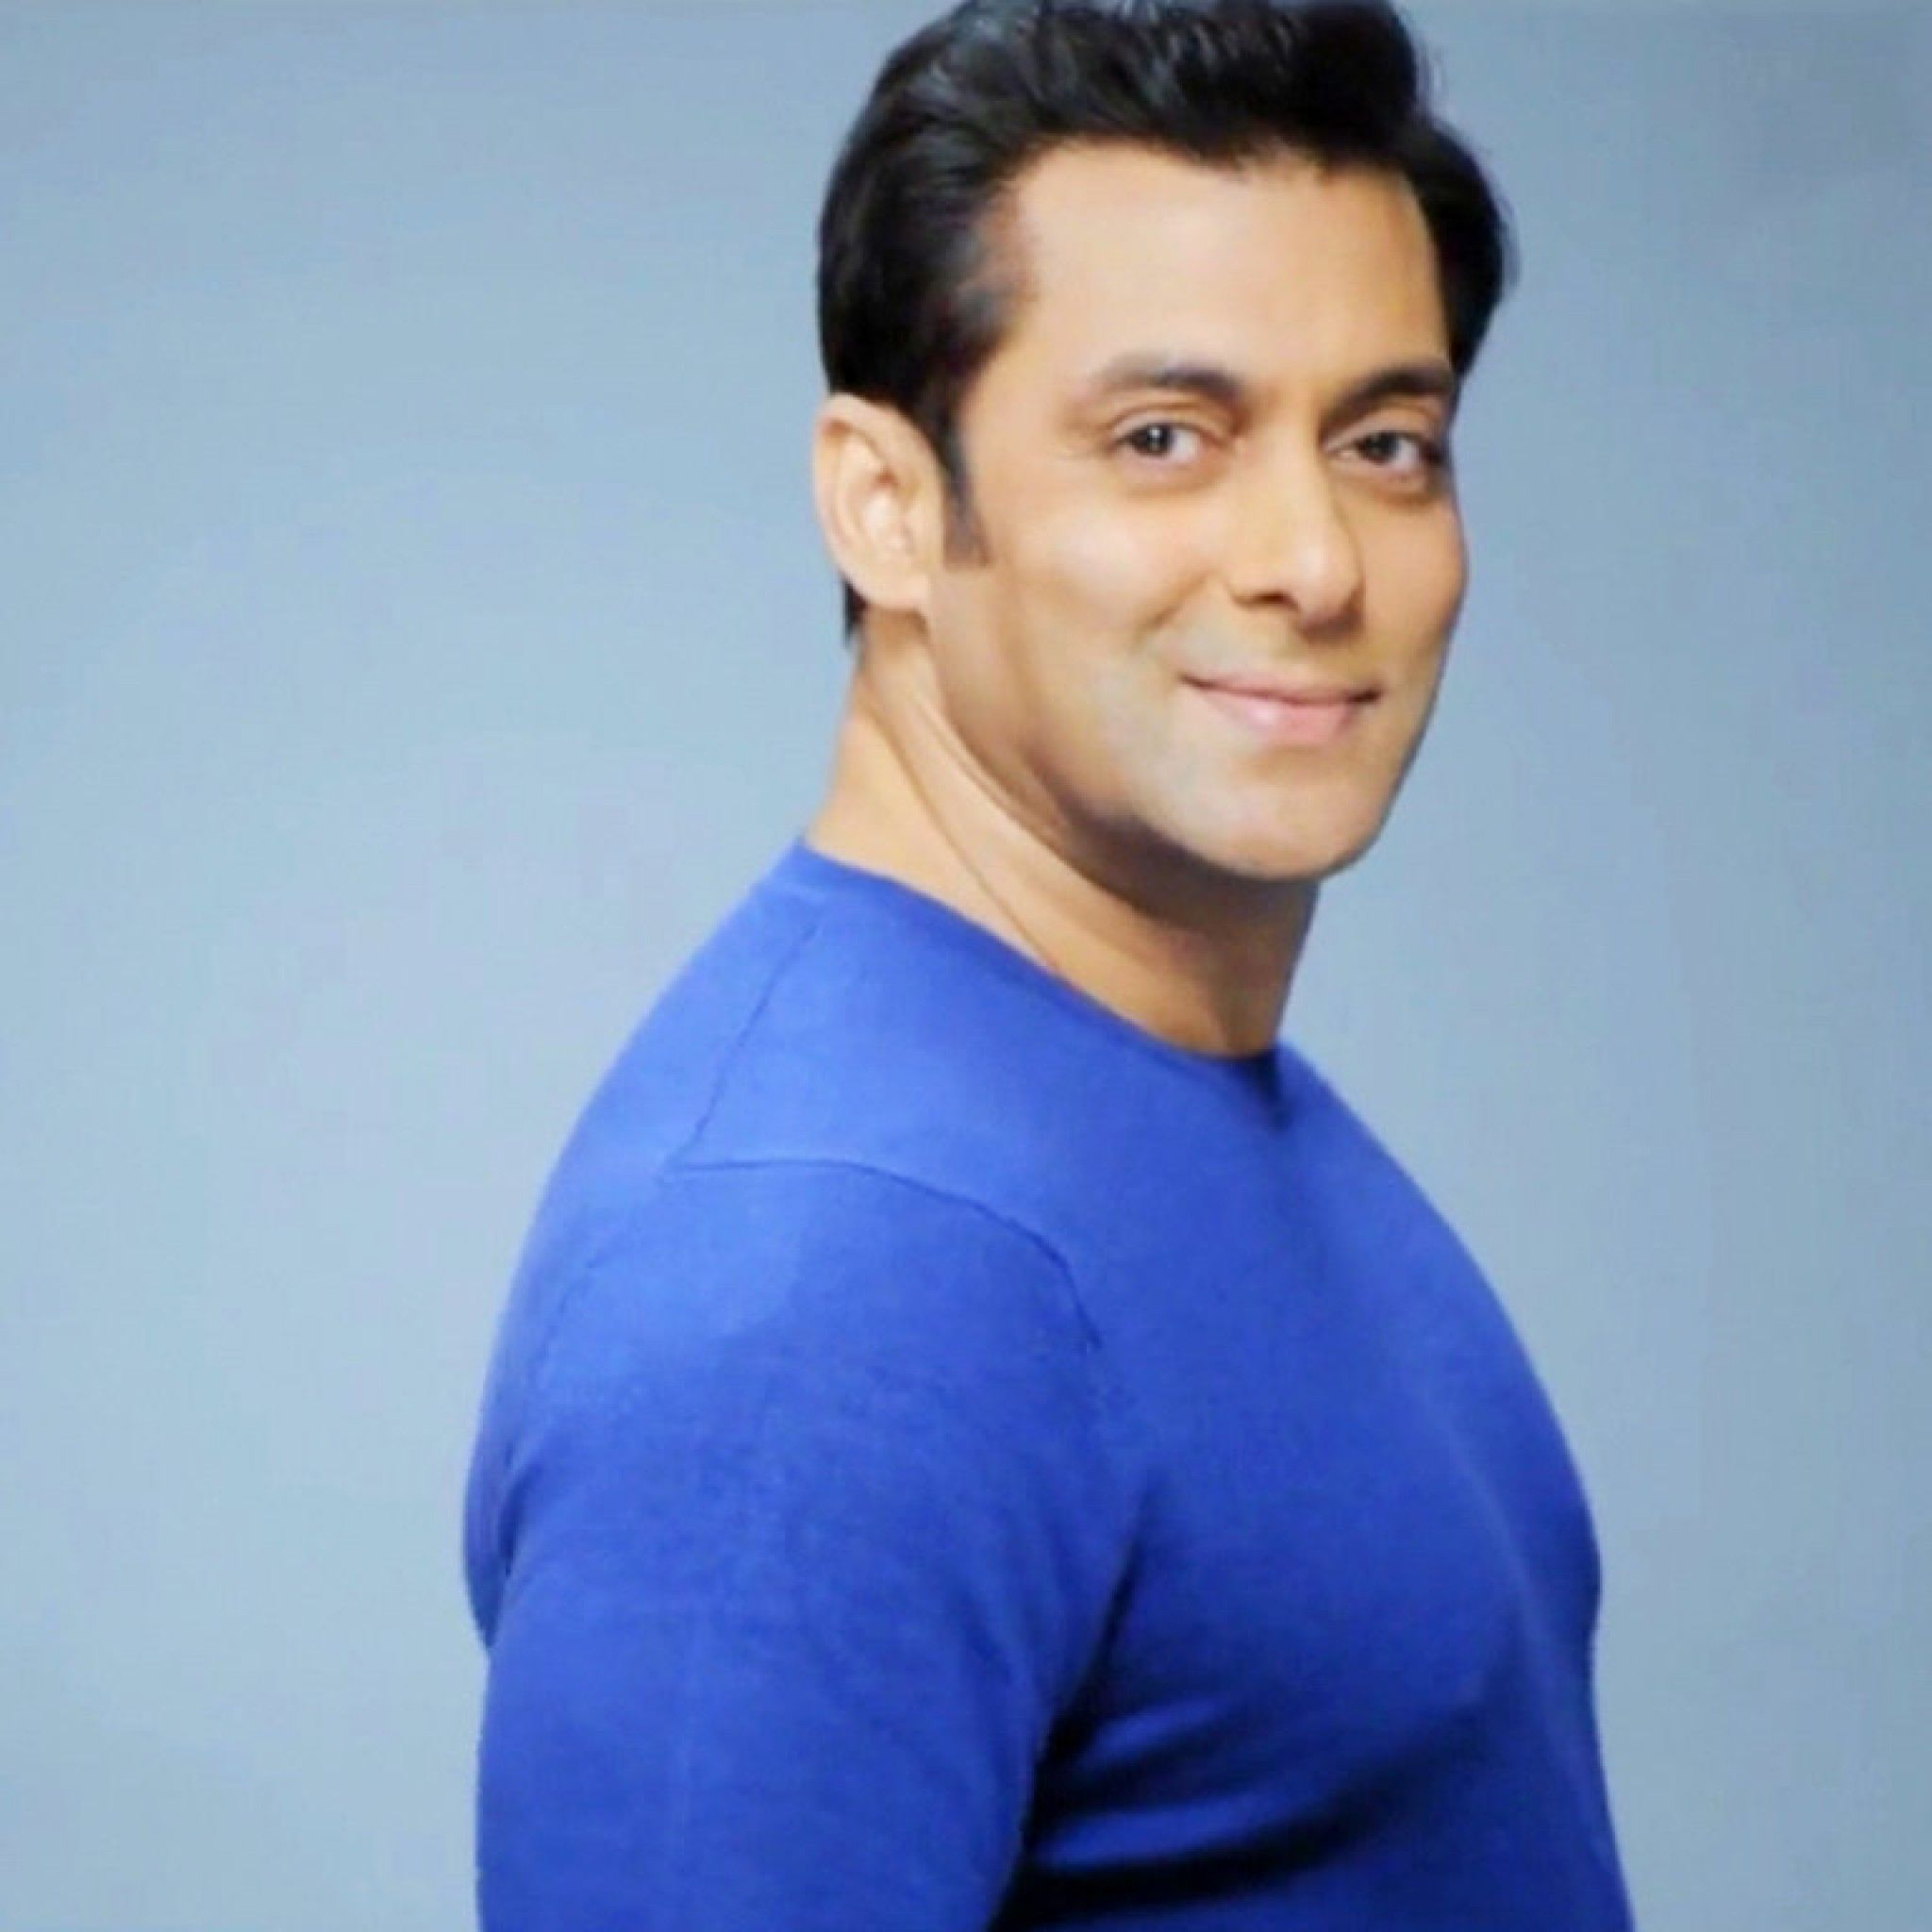 salman khan vksalman khan film, salman khan mp3, salman khan биография, salman khan filmleri, salman khan vk, salman khan filmi, salman khan wikipedia, salman khan 2017, salman khan movies, salman khan kino uzbek tilida, salman khan songs, salman khan academy, salman khan sultan, salman khan katrina kaif, salman khan klip, salman khan family, salman khan filmography, salman khan mp3 скачать, salman khan biography, salman khan photo